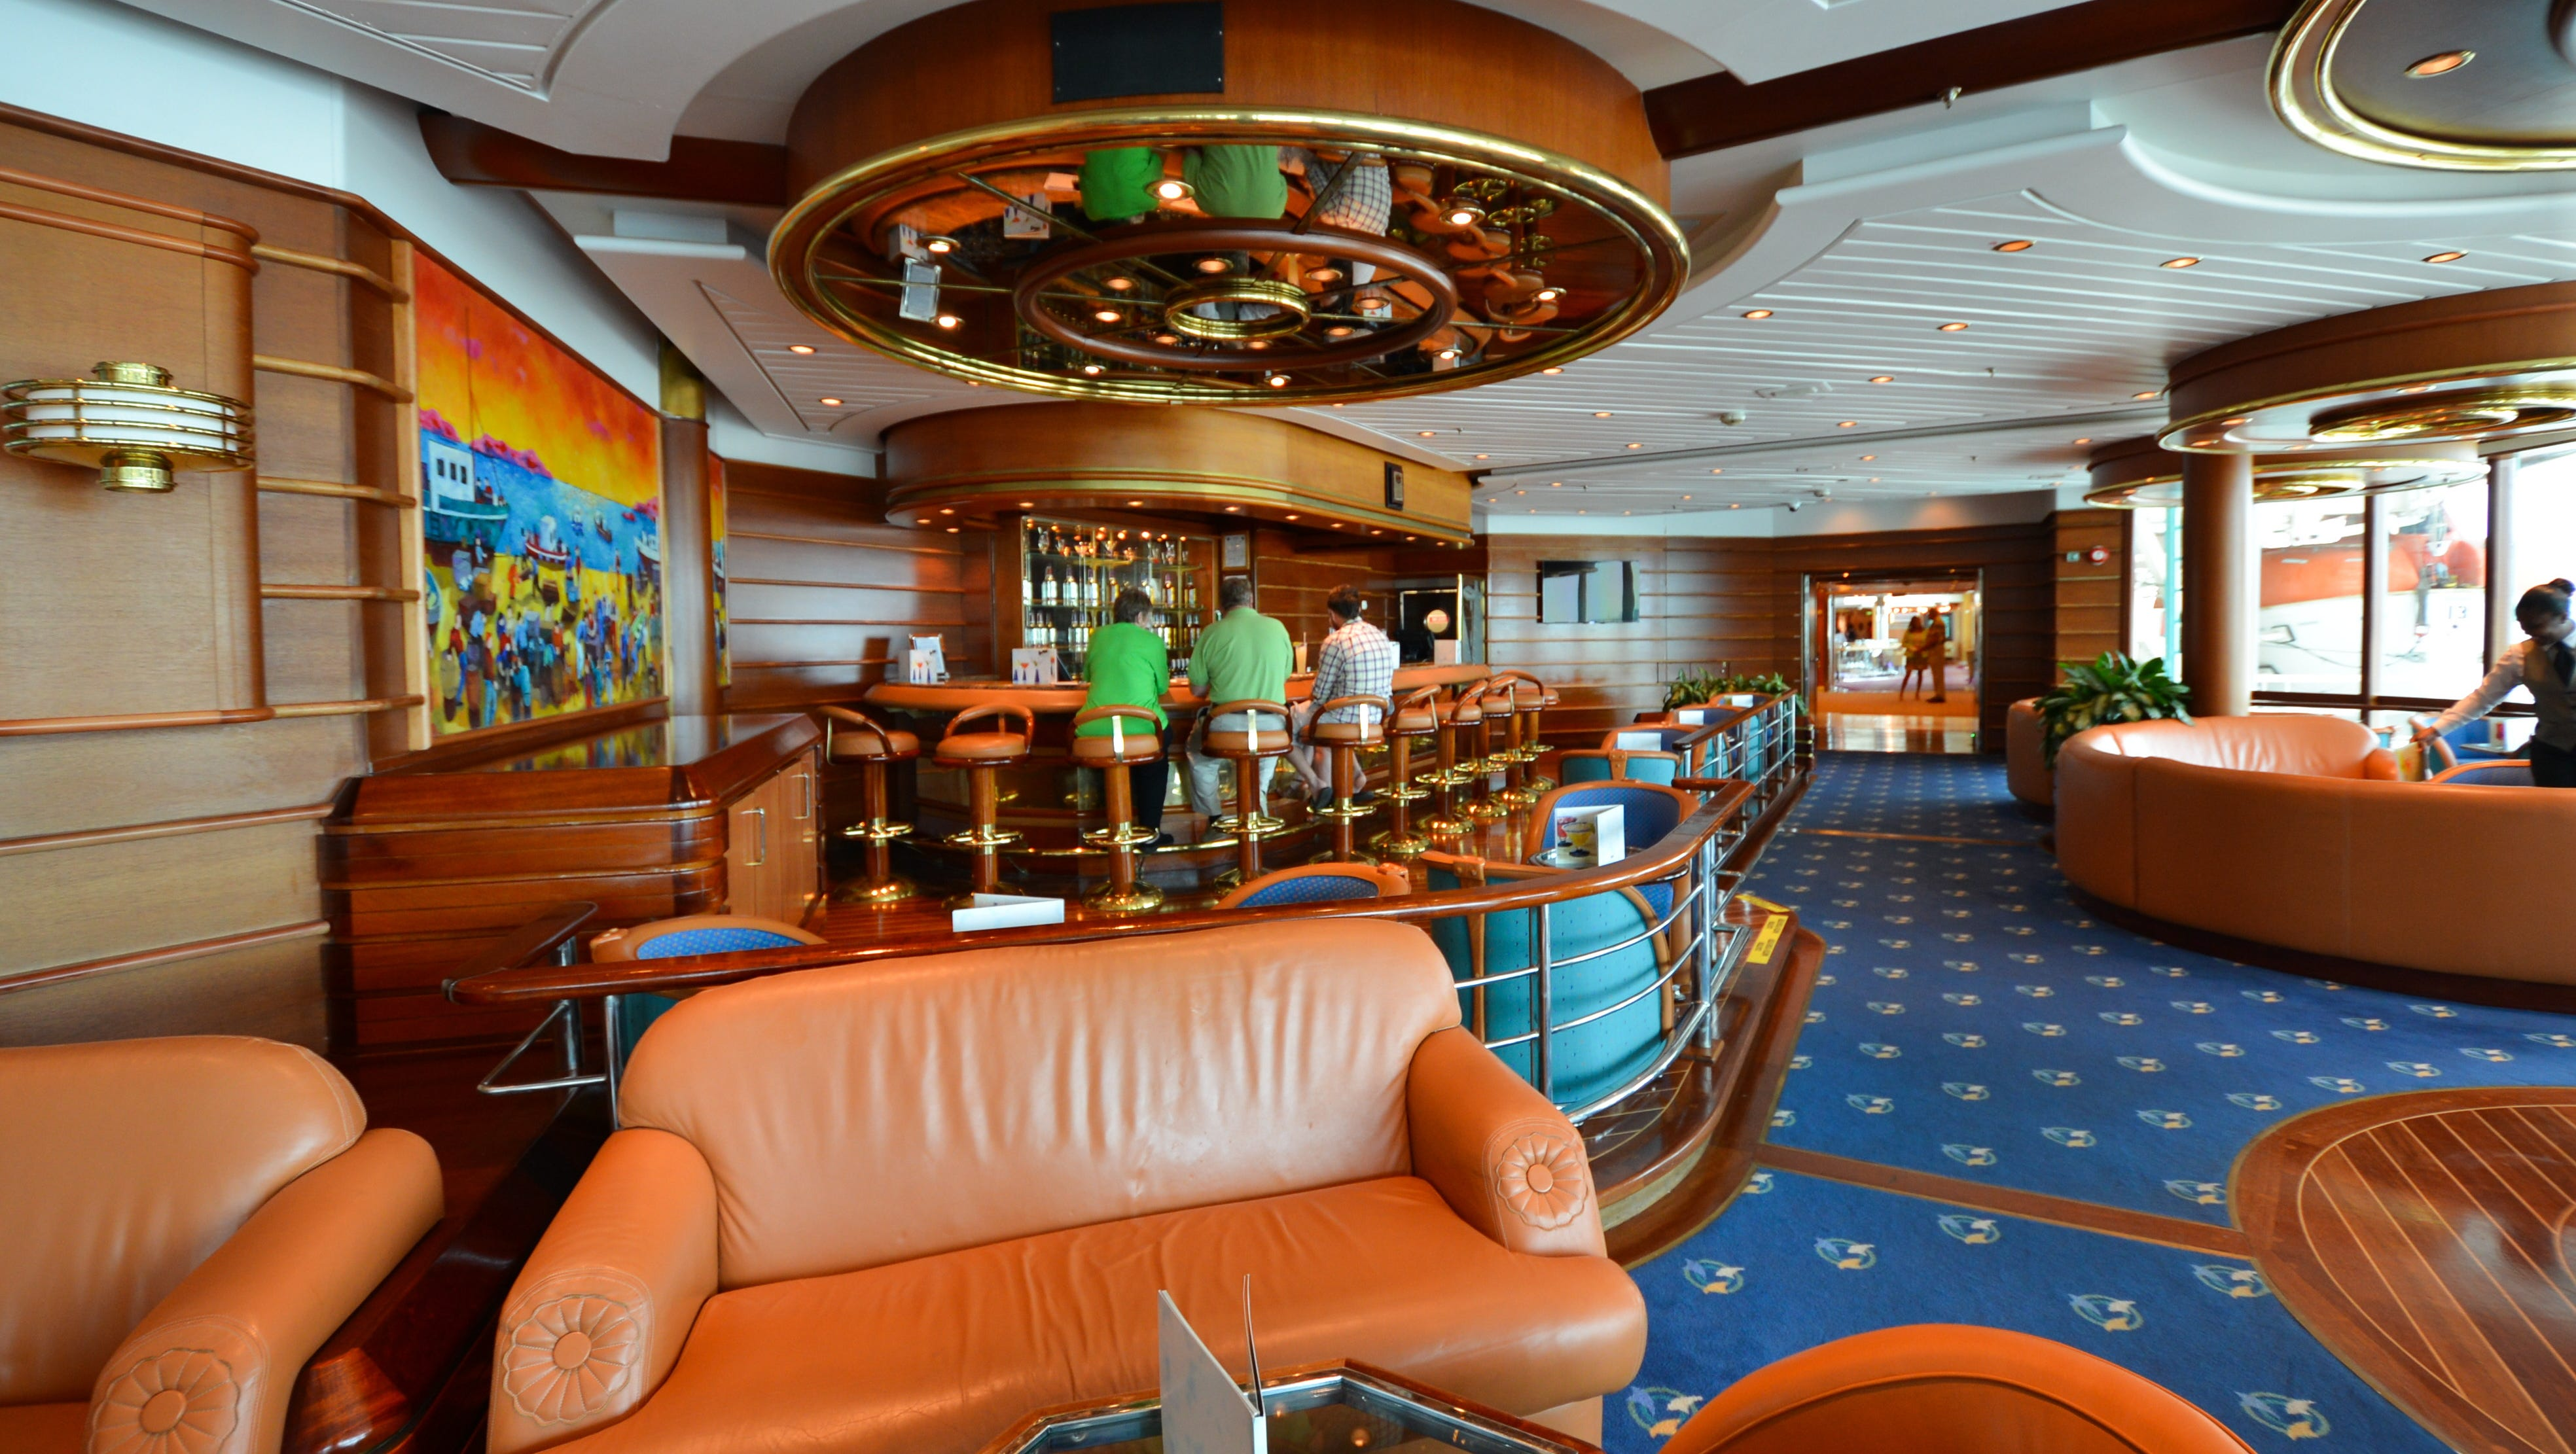 Located just off the Centrum is the Schooner Bar, a signature Royal Caribbean lounge that is a central gathering place for passengers.